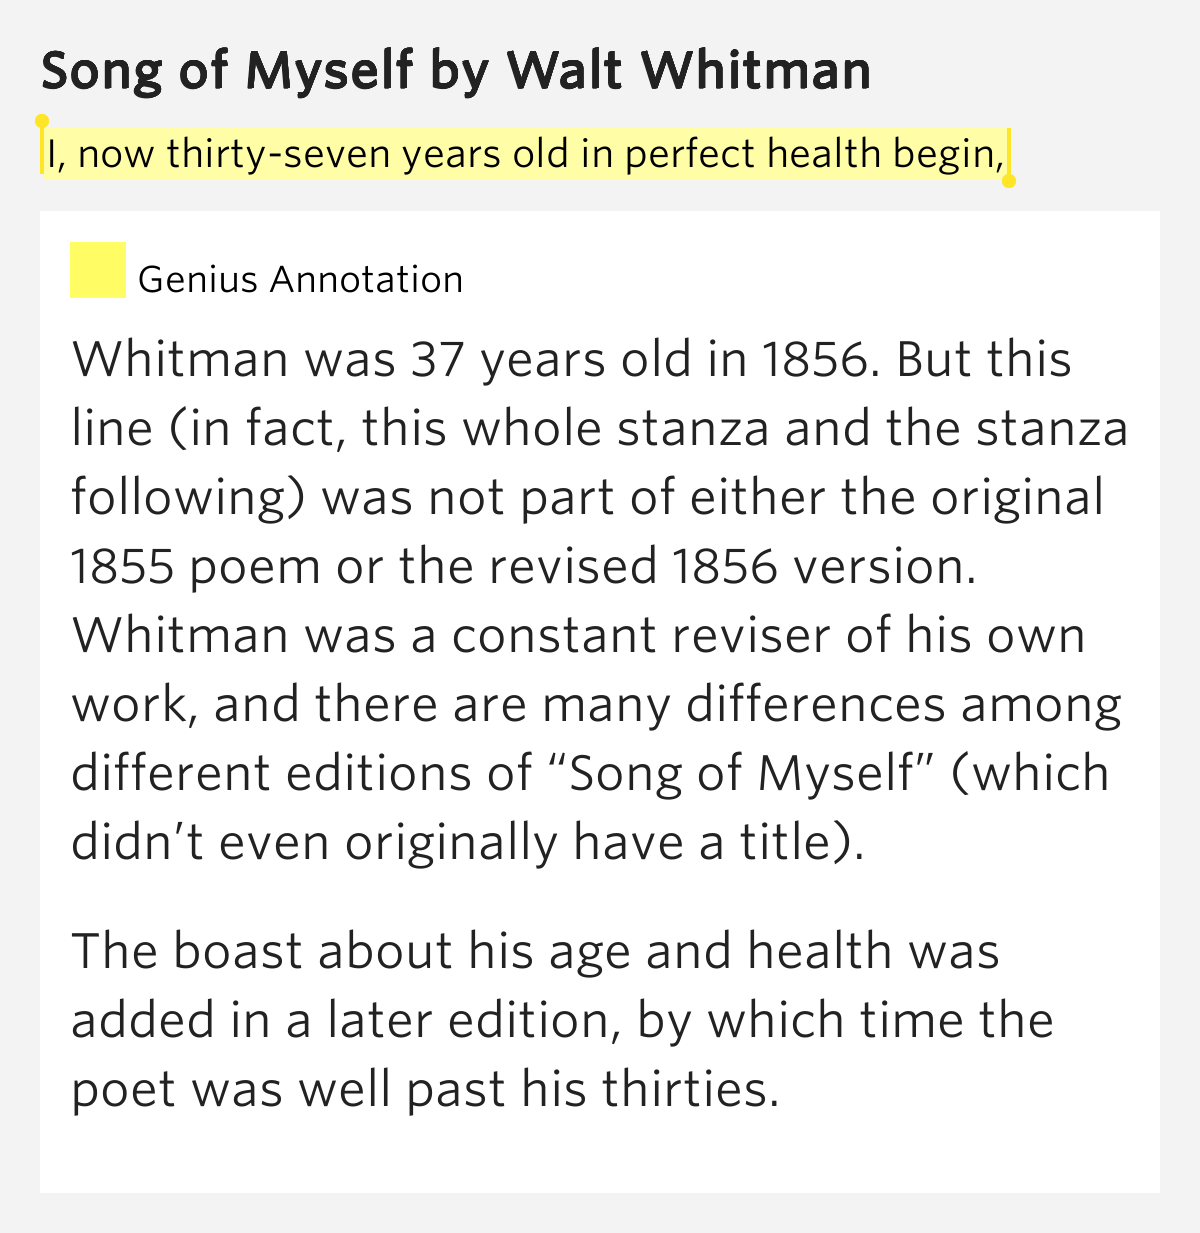 essay on songs of myself Complete summary of walt whitman's song of myself enotes plot summaries cover all the significant action of song of myself a celebration of the human self and all that it can see, hear, touch, taste, smell, intuit, and contemplate in the human and natural world.